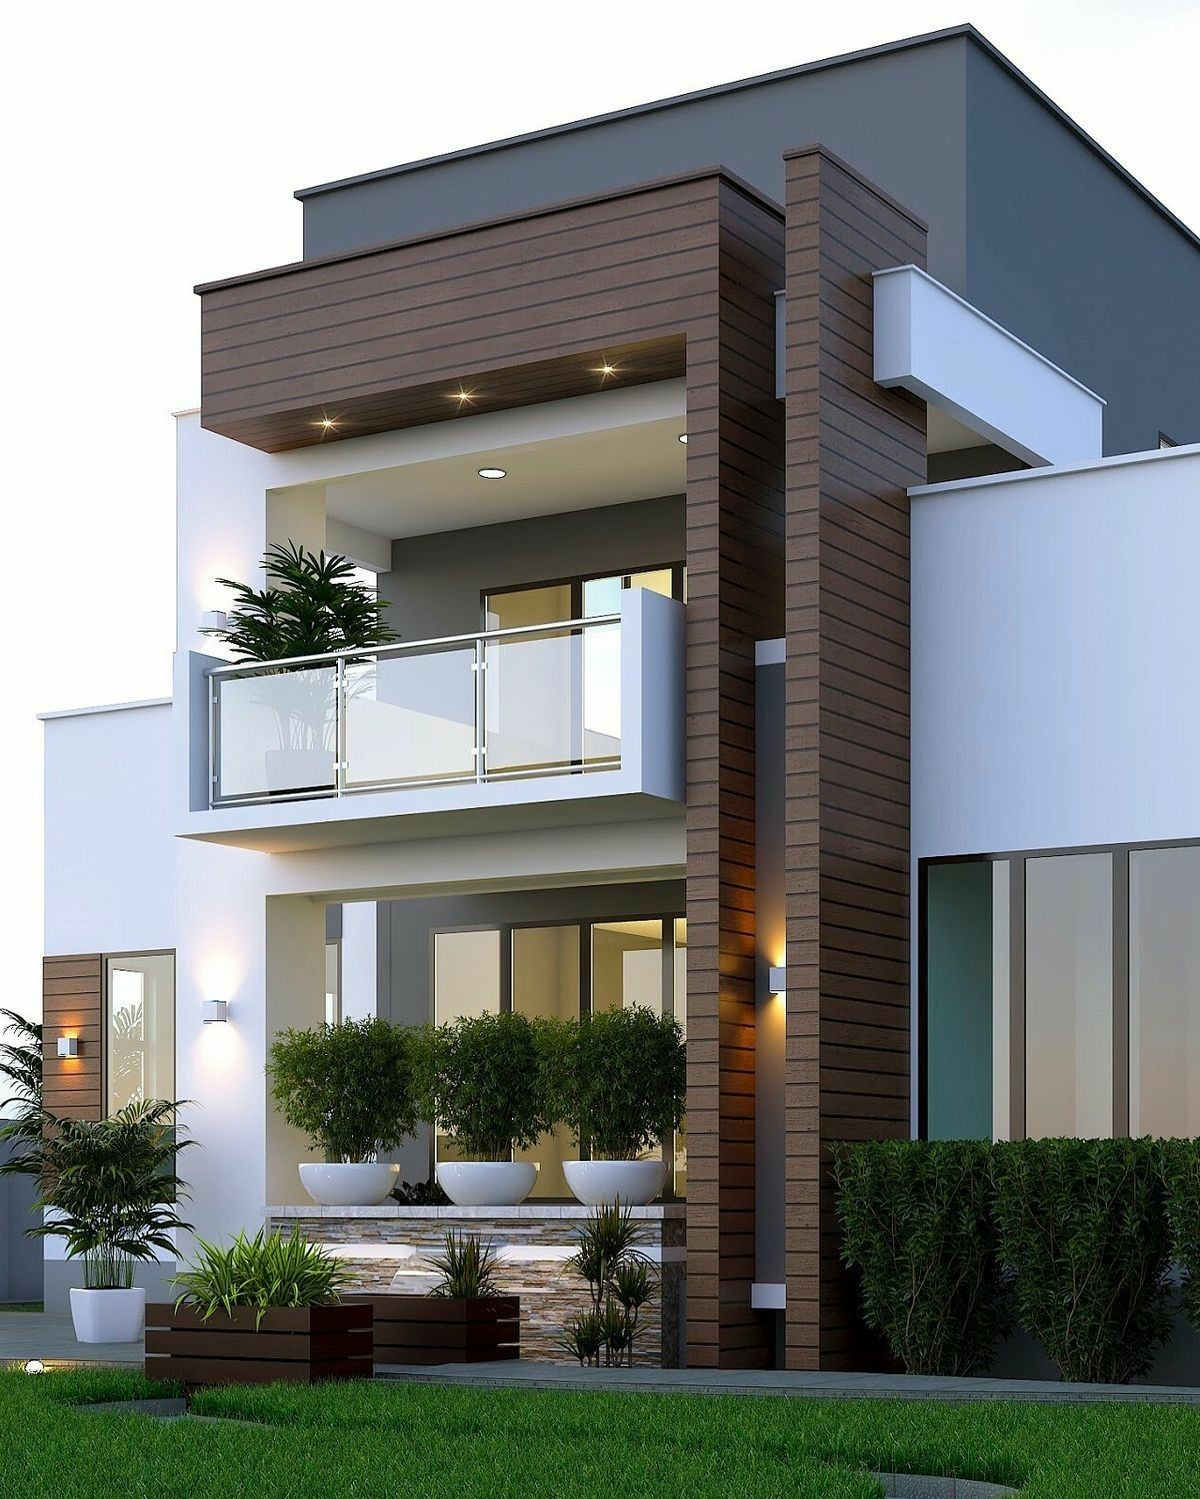 Modern Home Exterior Design Ideas 2017: House Design, Minimalist House